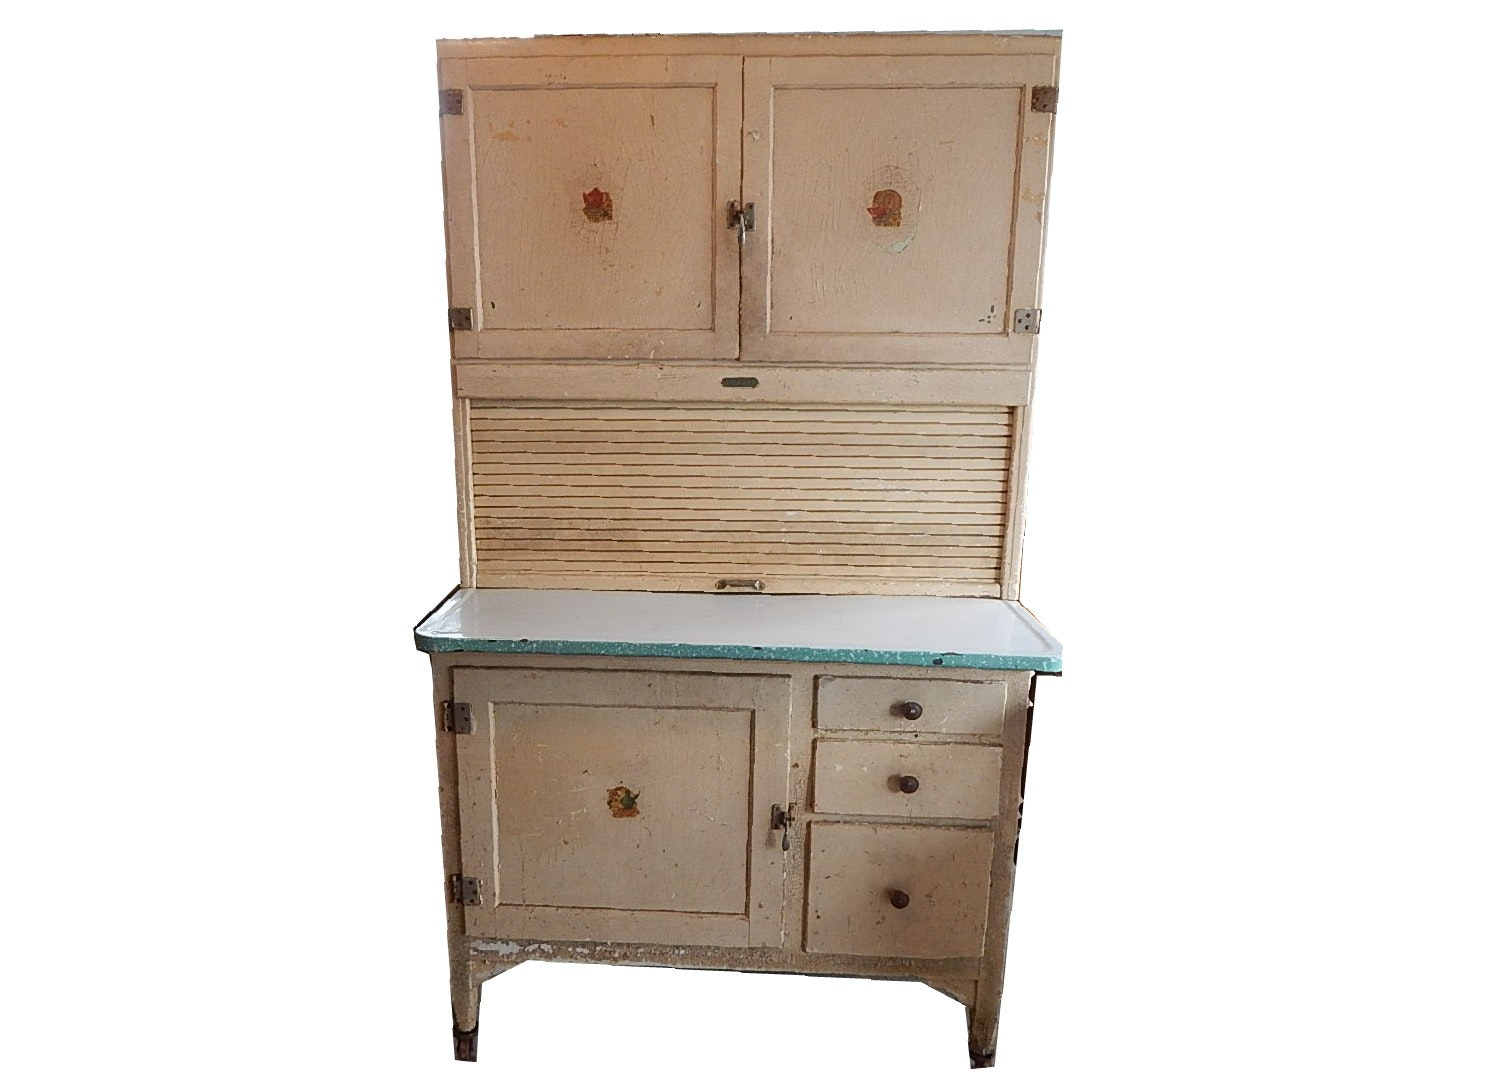 Shabby Chic Kitchen Cabinets: Antique Shabby Chic Painted Sellers Roll-Top Kitchen